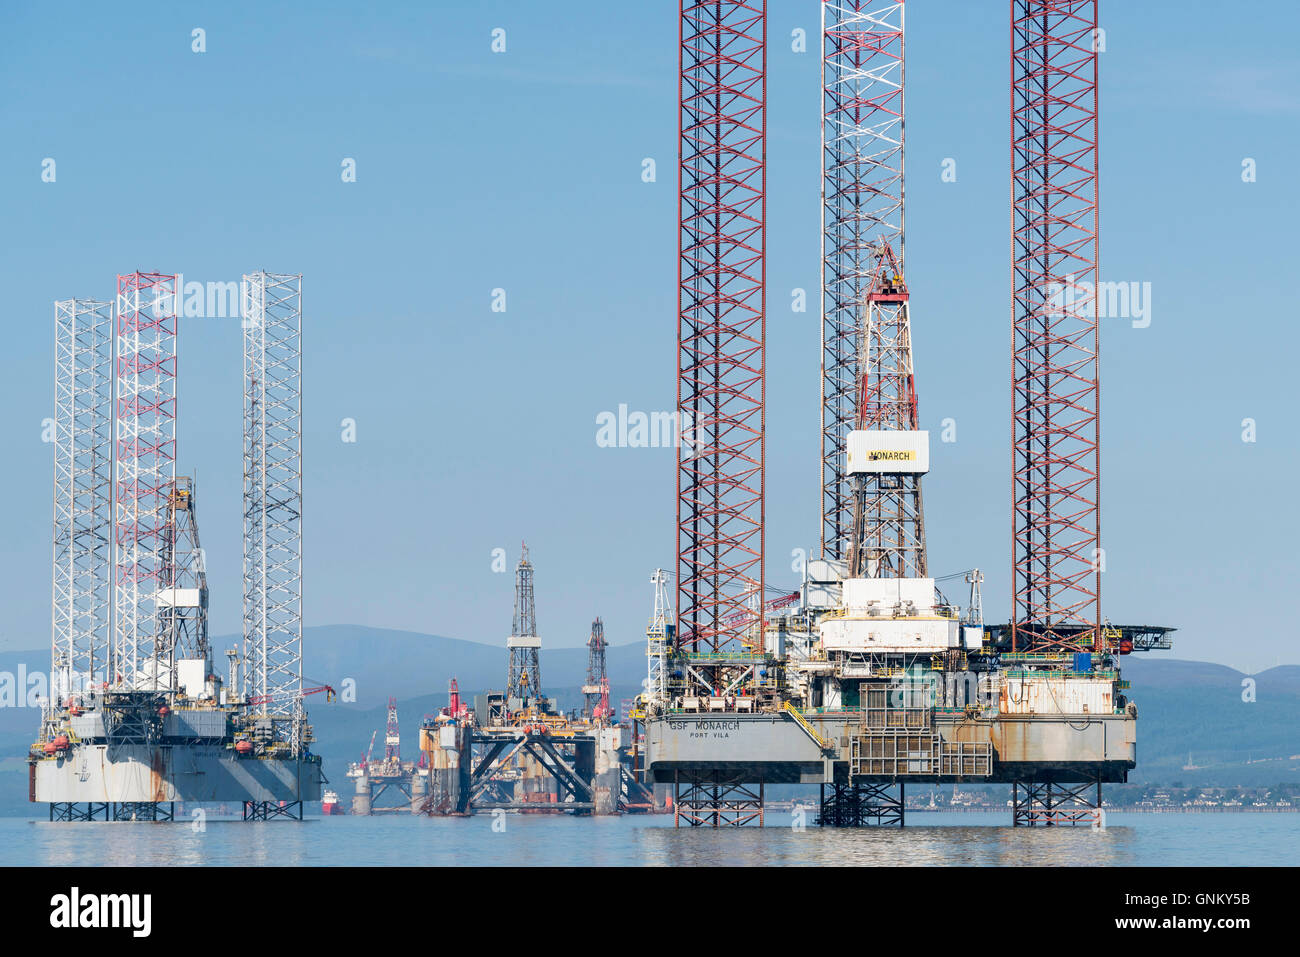 Oil rigs / drilling platforms moored in Cromarty Firth in Ross and Cromarty, Highland, Scotland, United Kingdom Stock Photo